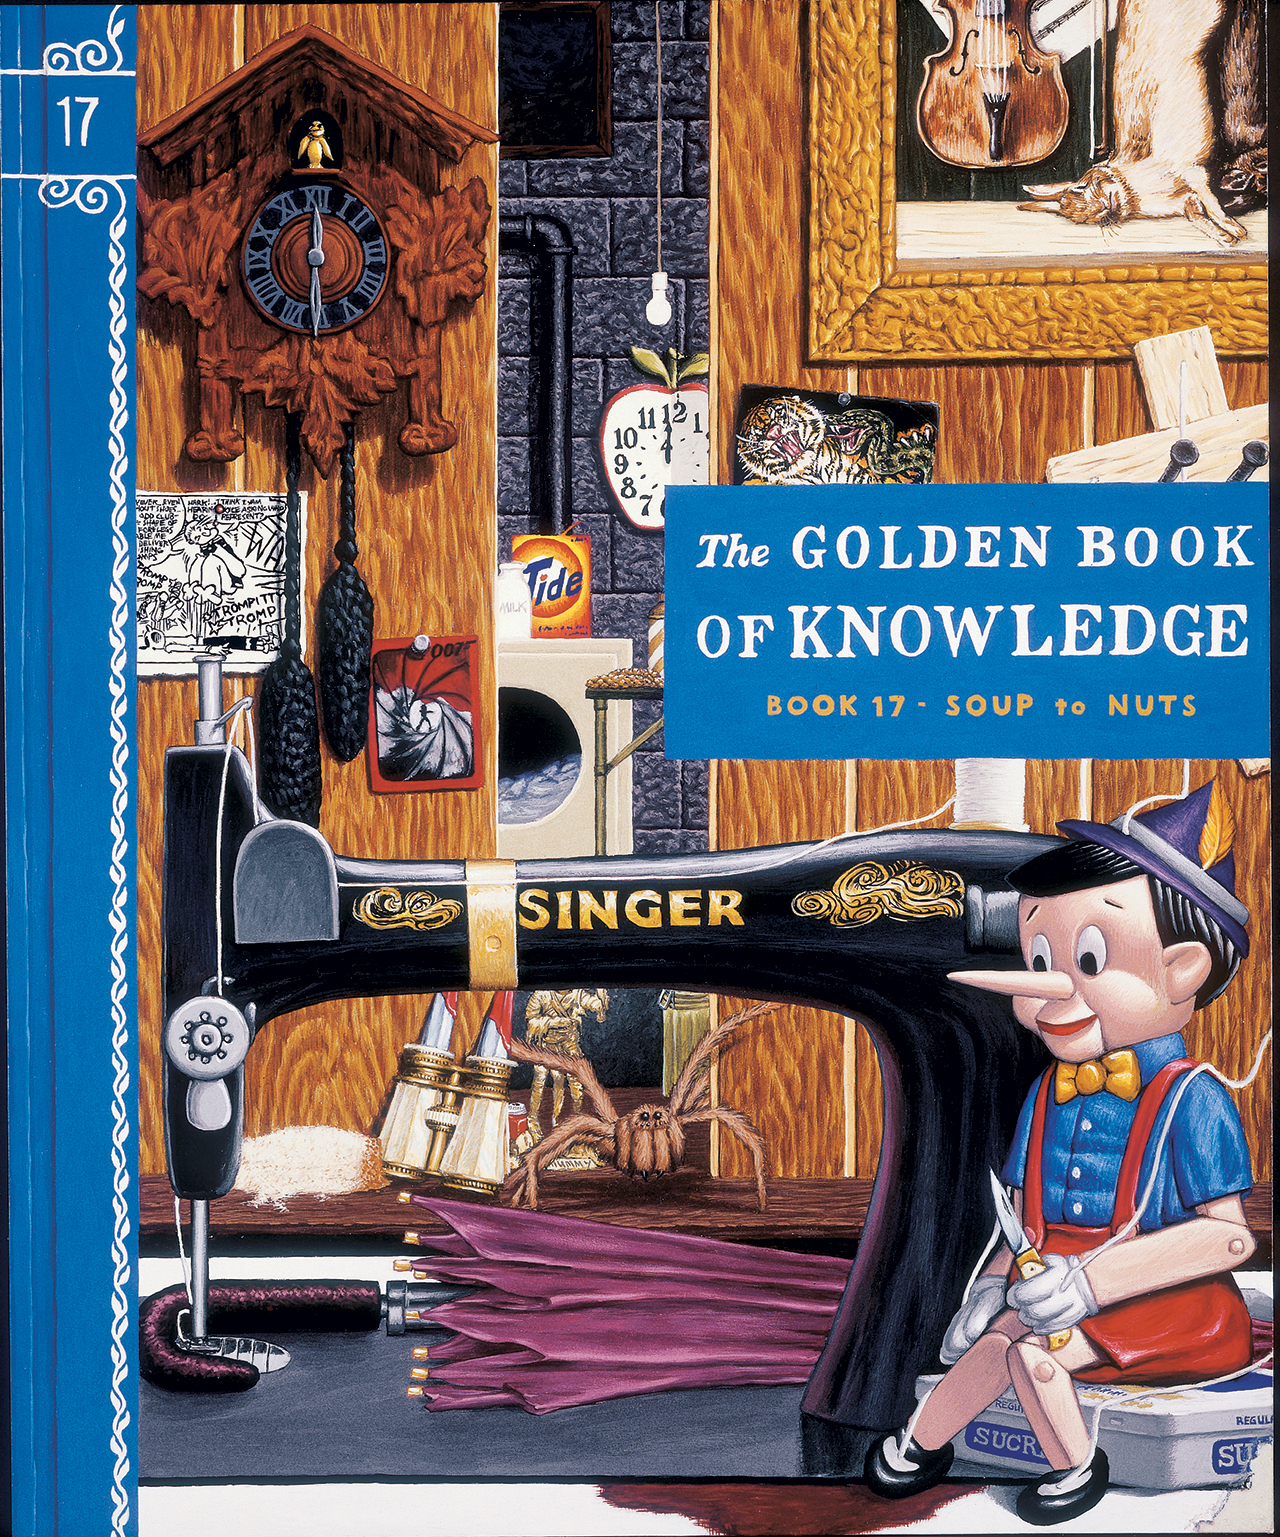 """Jim Shaw, """"The Golden Book of Knowledge"""" (1989), gouache on board, 17 x 14 in (The Eileen Harris Norton Collection, image courtesy the New Museum)"""